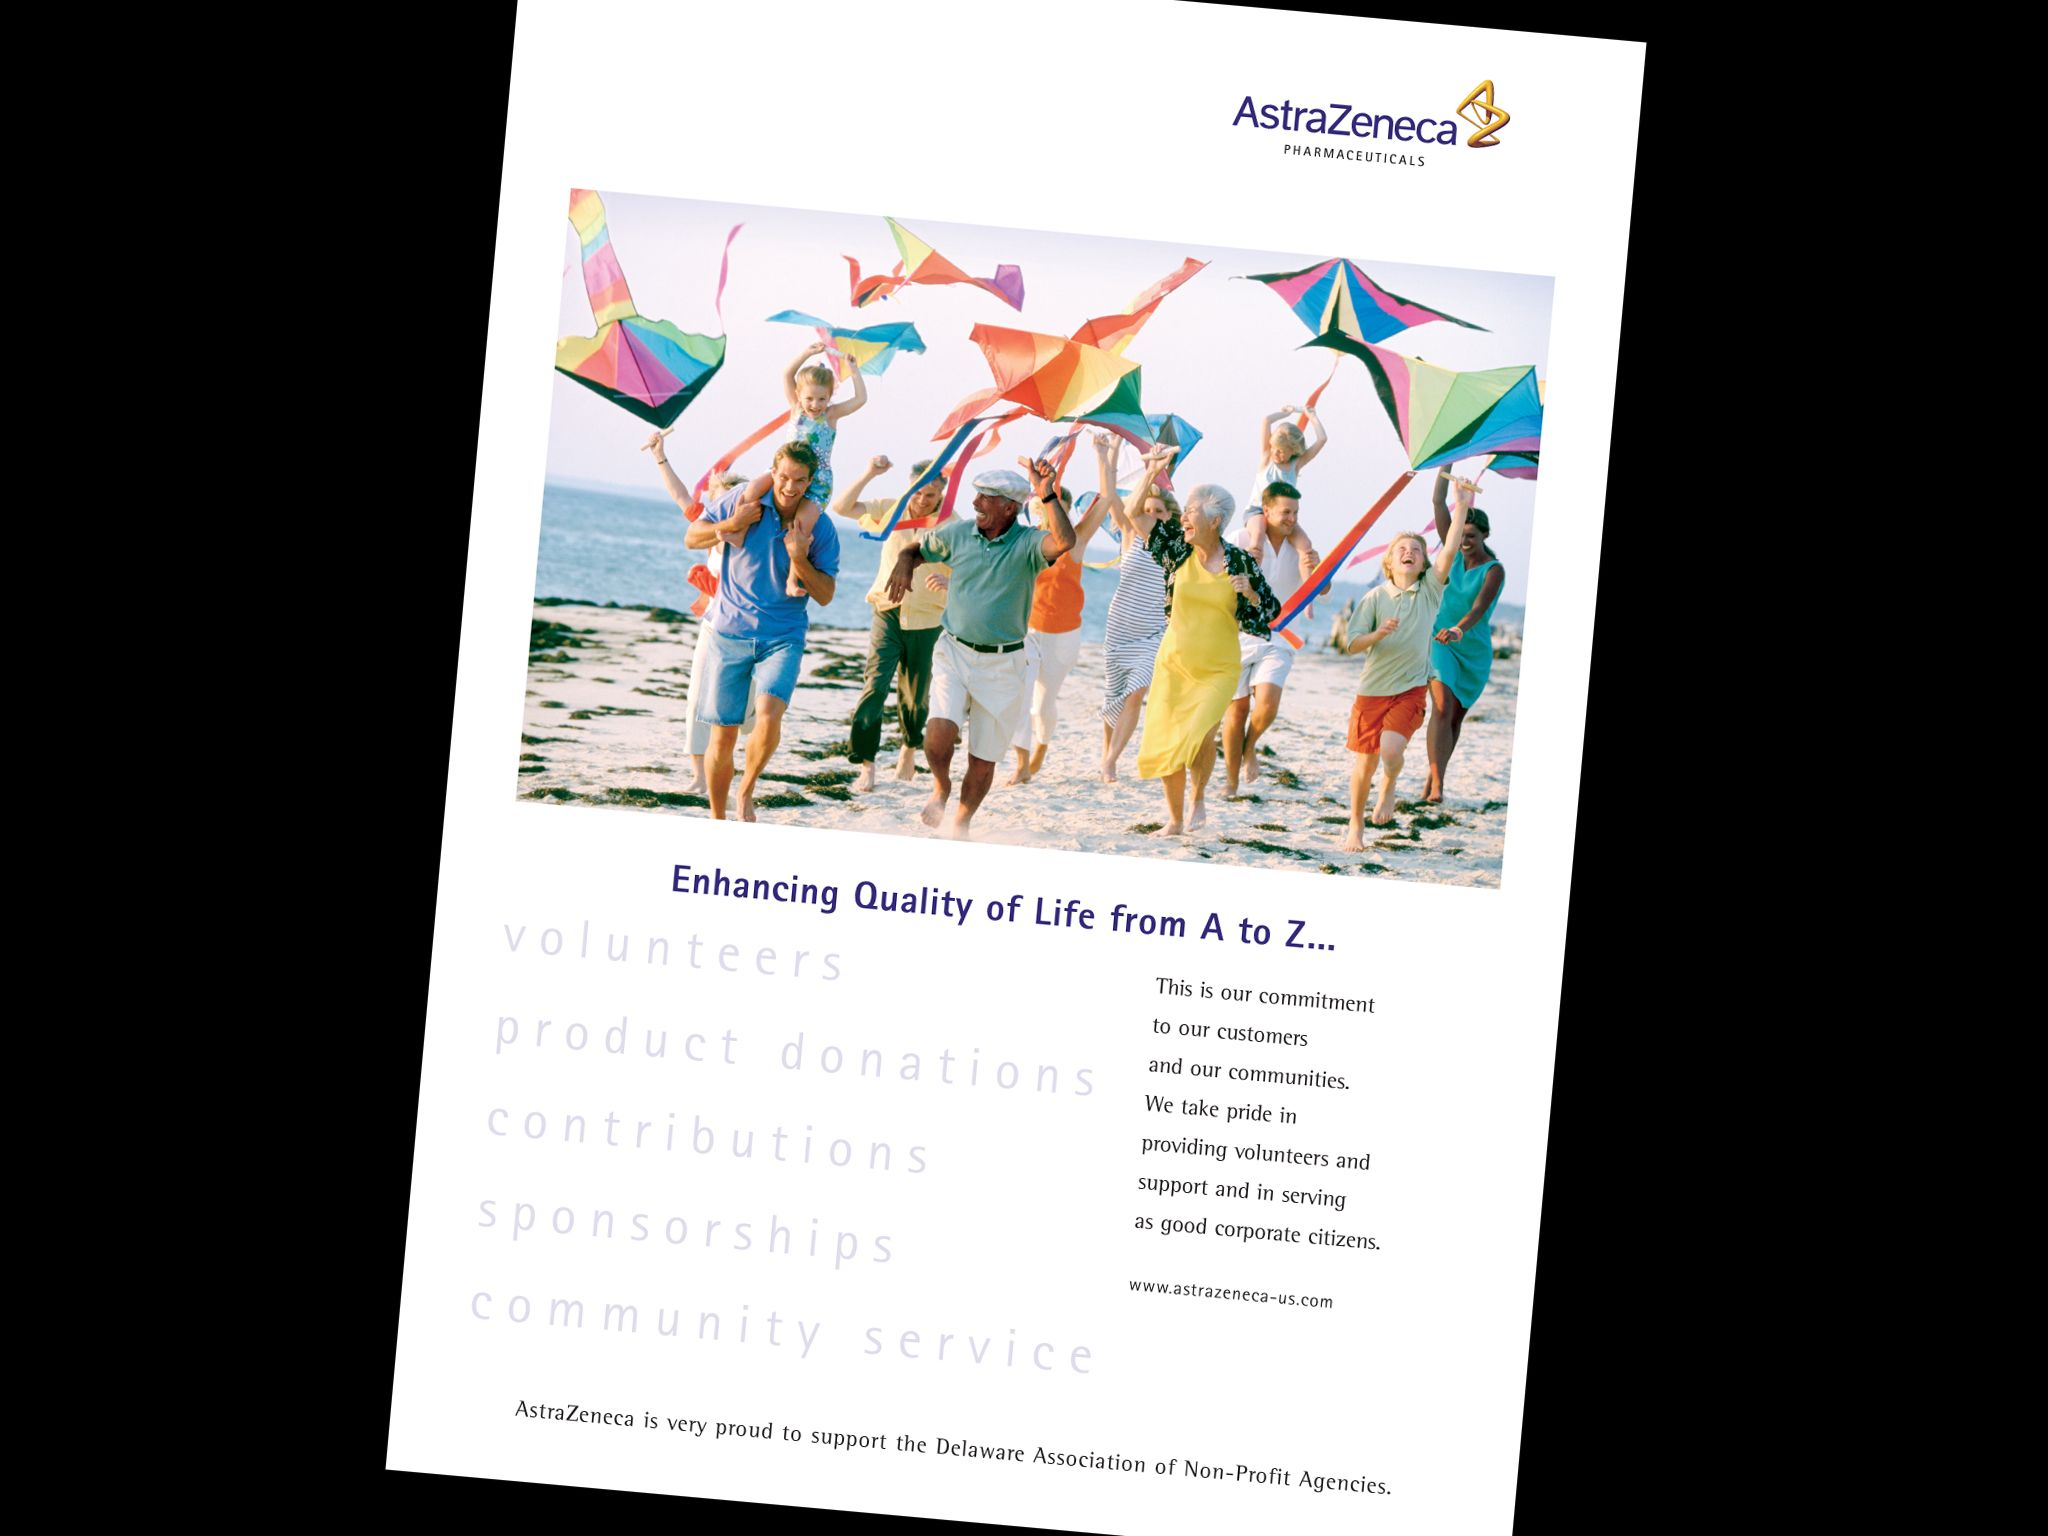 Astrazeneca Enhancing The Quality Of Life Ad Life Enhancement Supportive